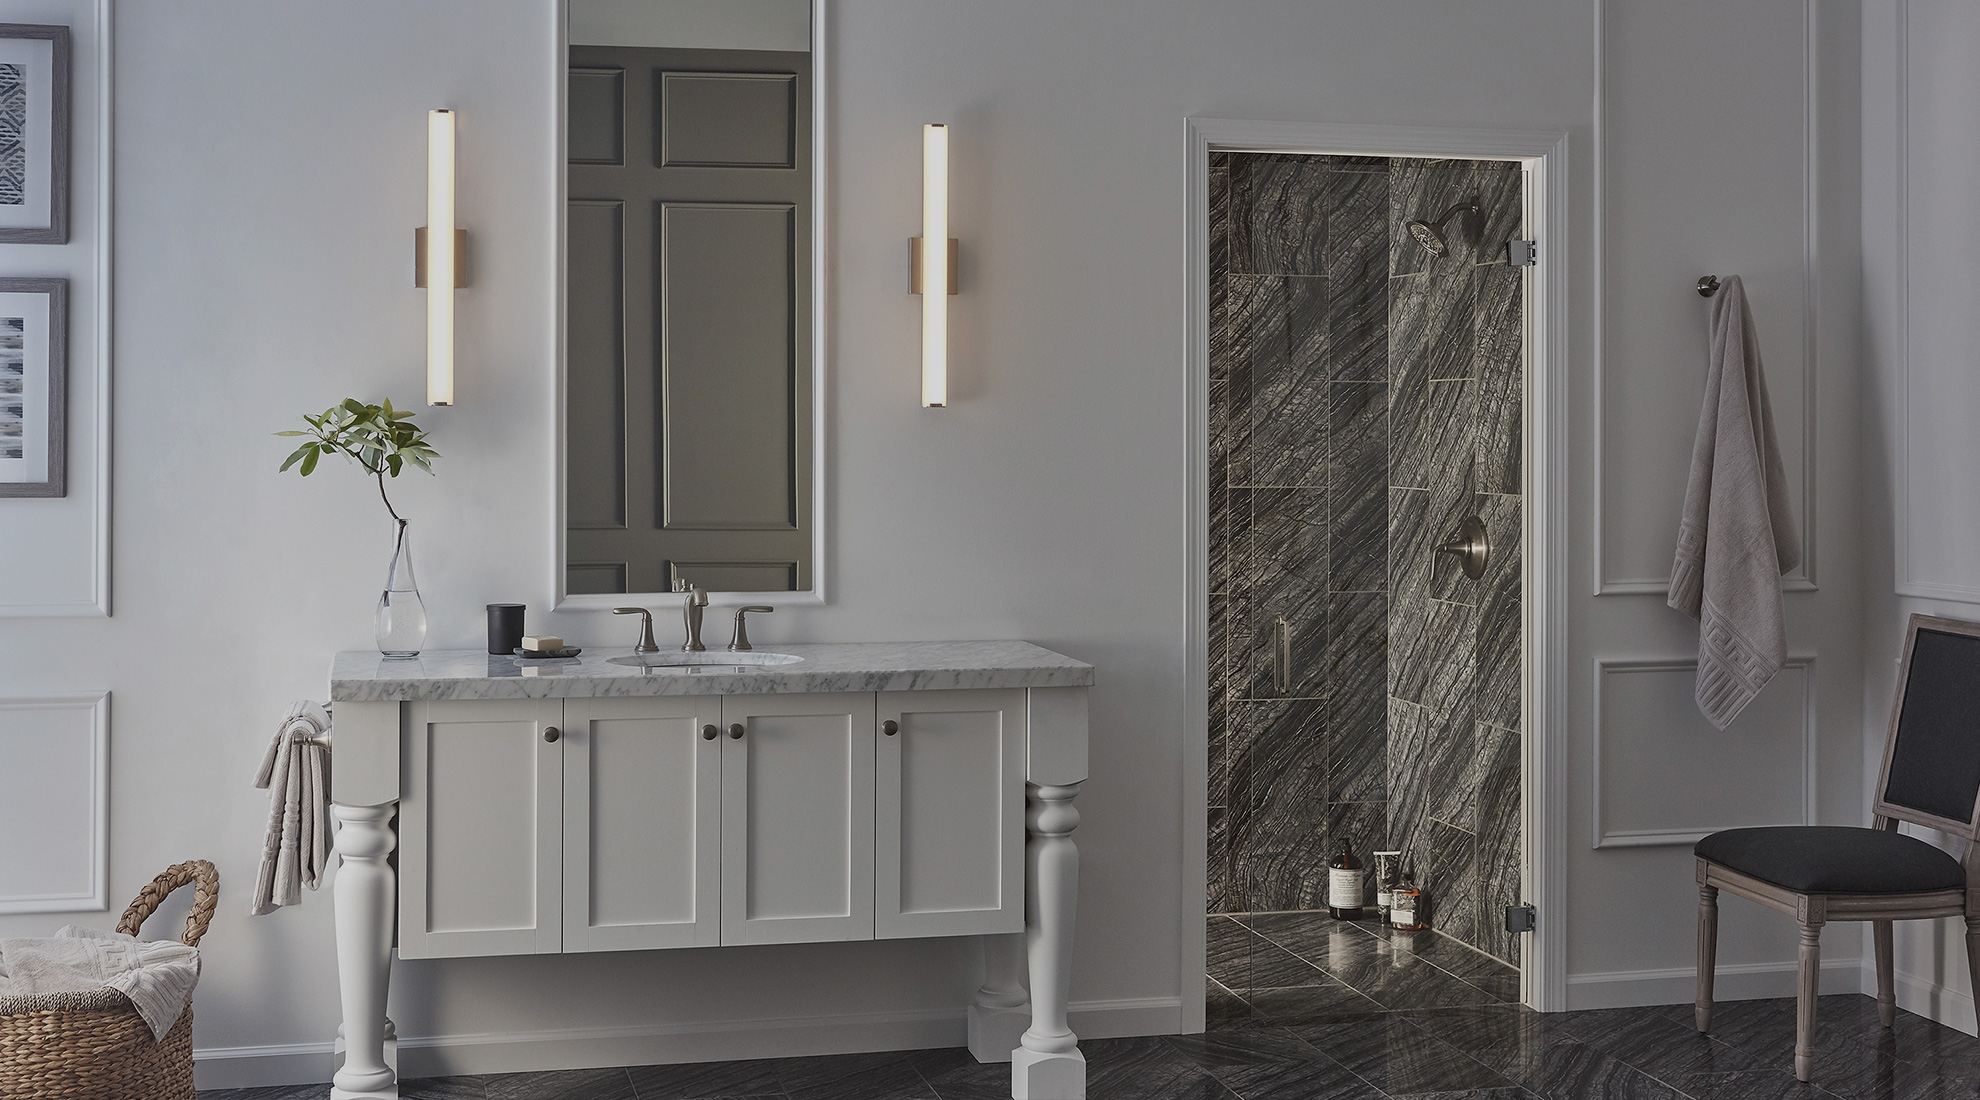 Small Floor Spotlights Bathroom Lighting Ideas 3 Tips For The Best Bath Lighting At